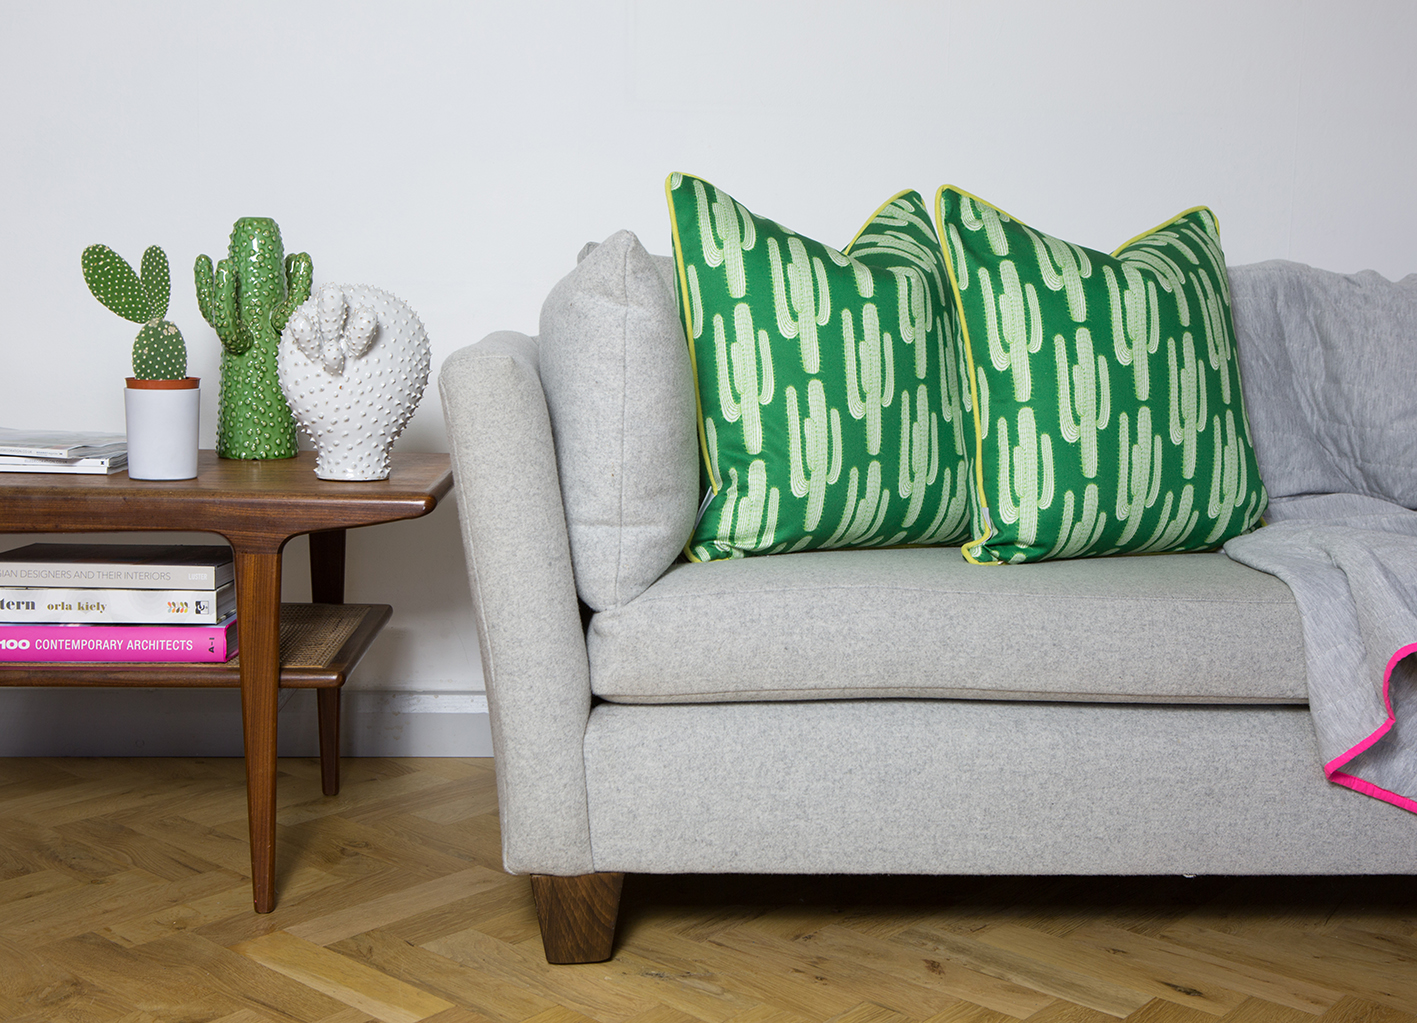 website Cactus cushion styled.jpg